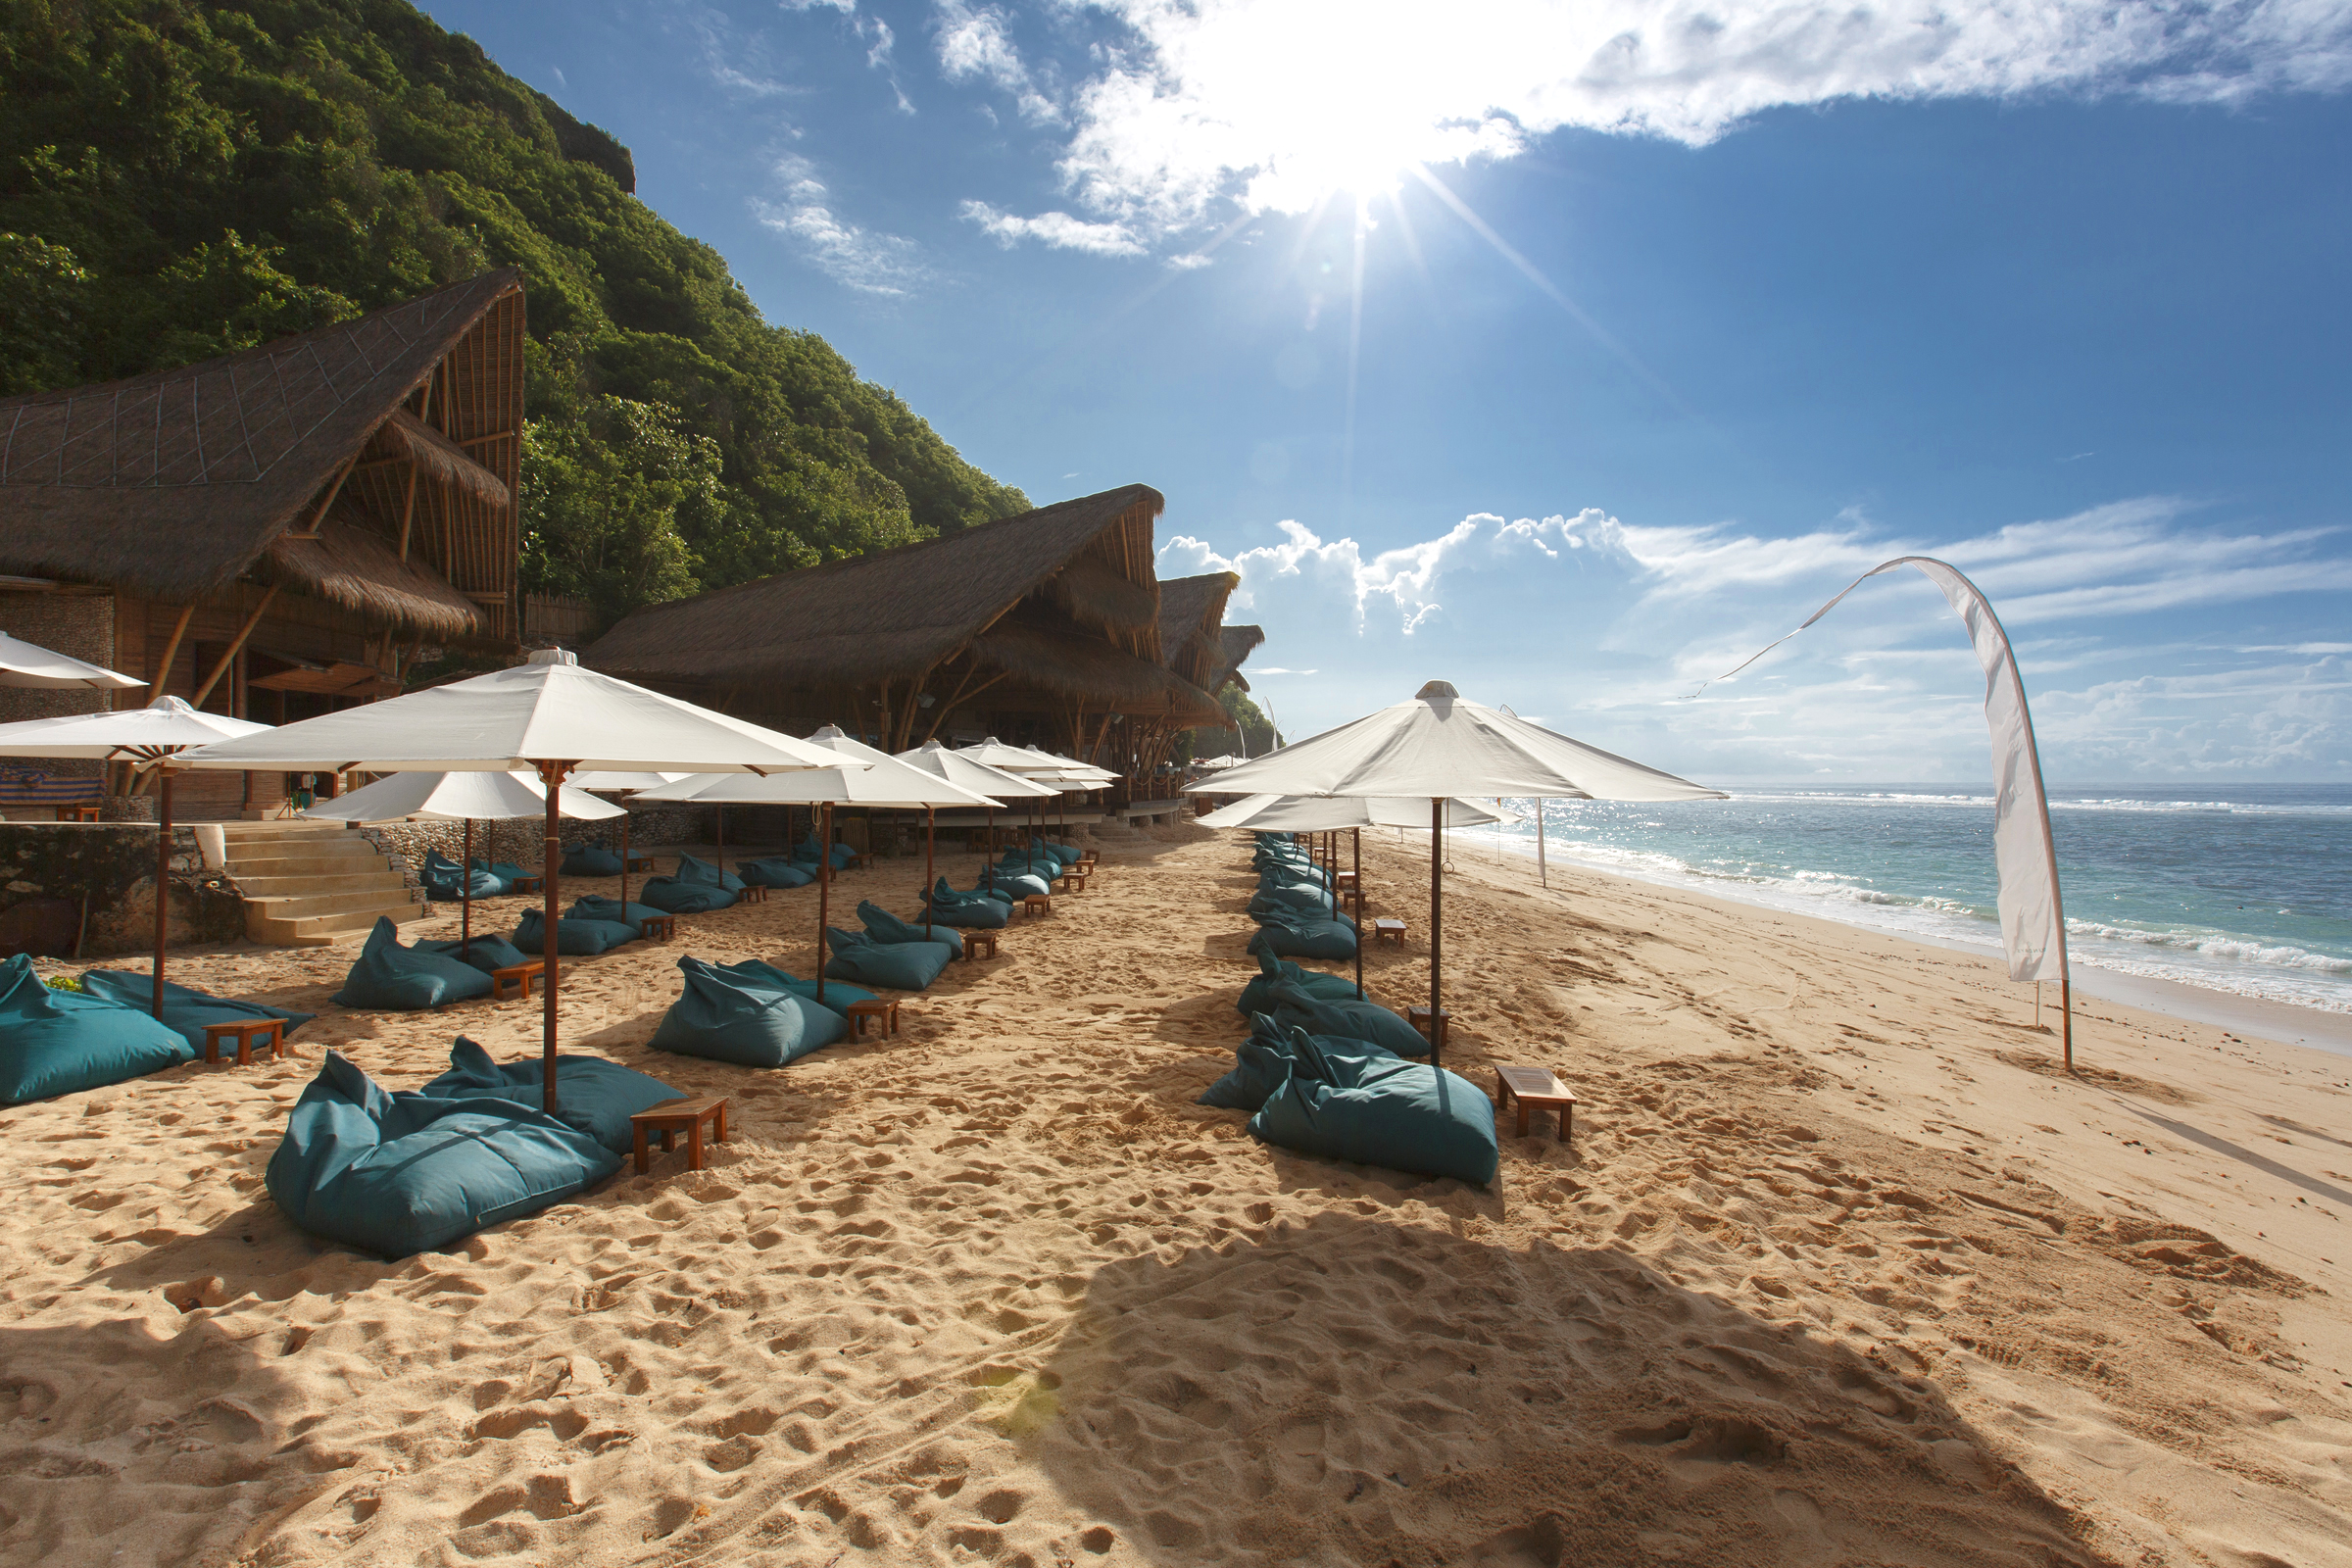 Sundays Beach Club Uluwatu Bali - A day at Sundays Beach Club